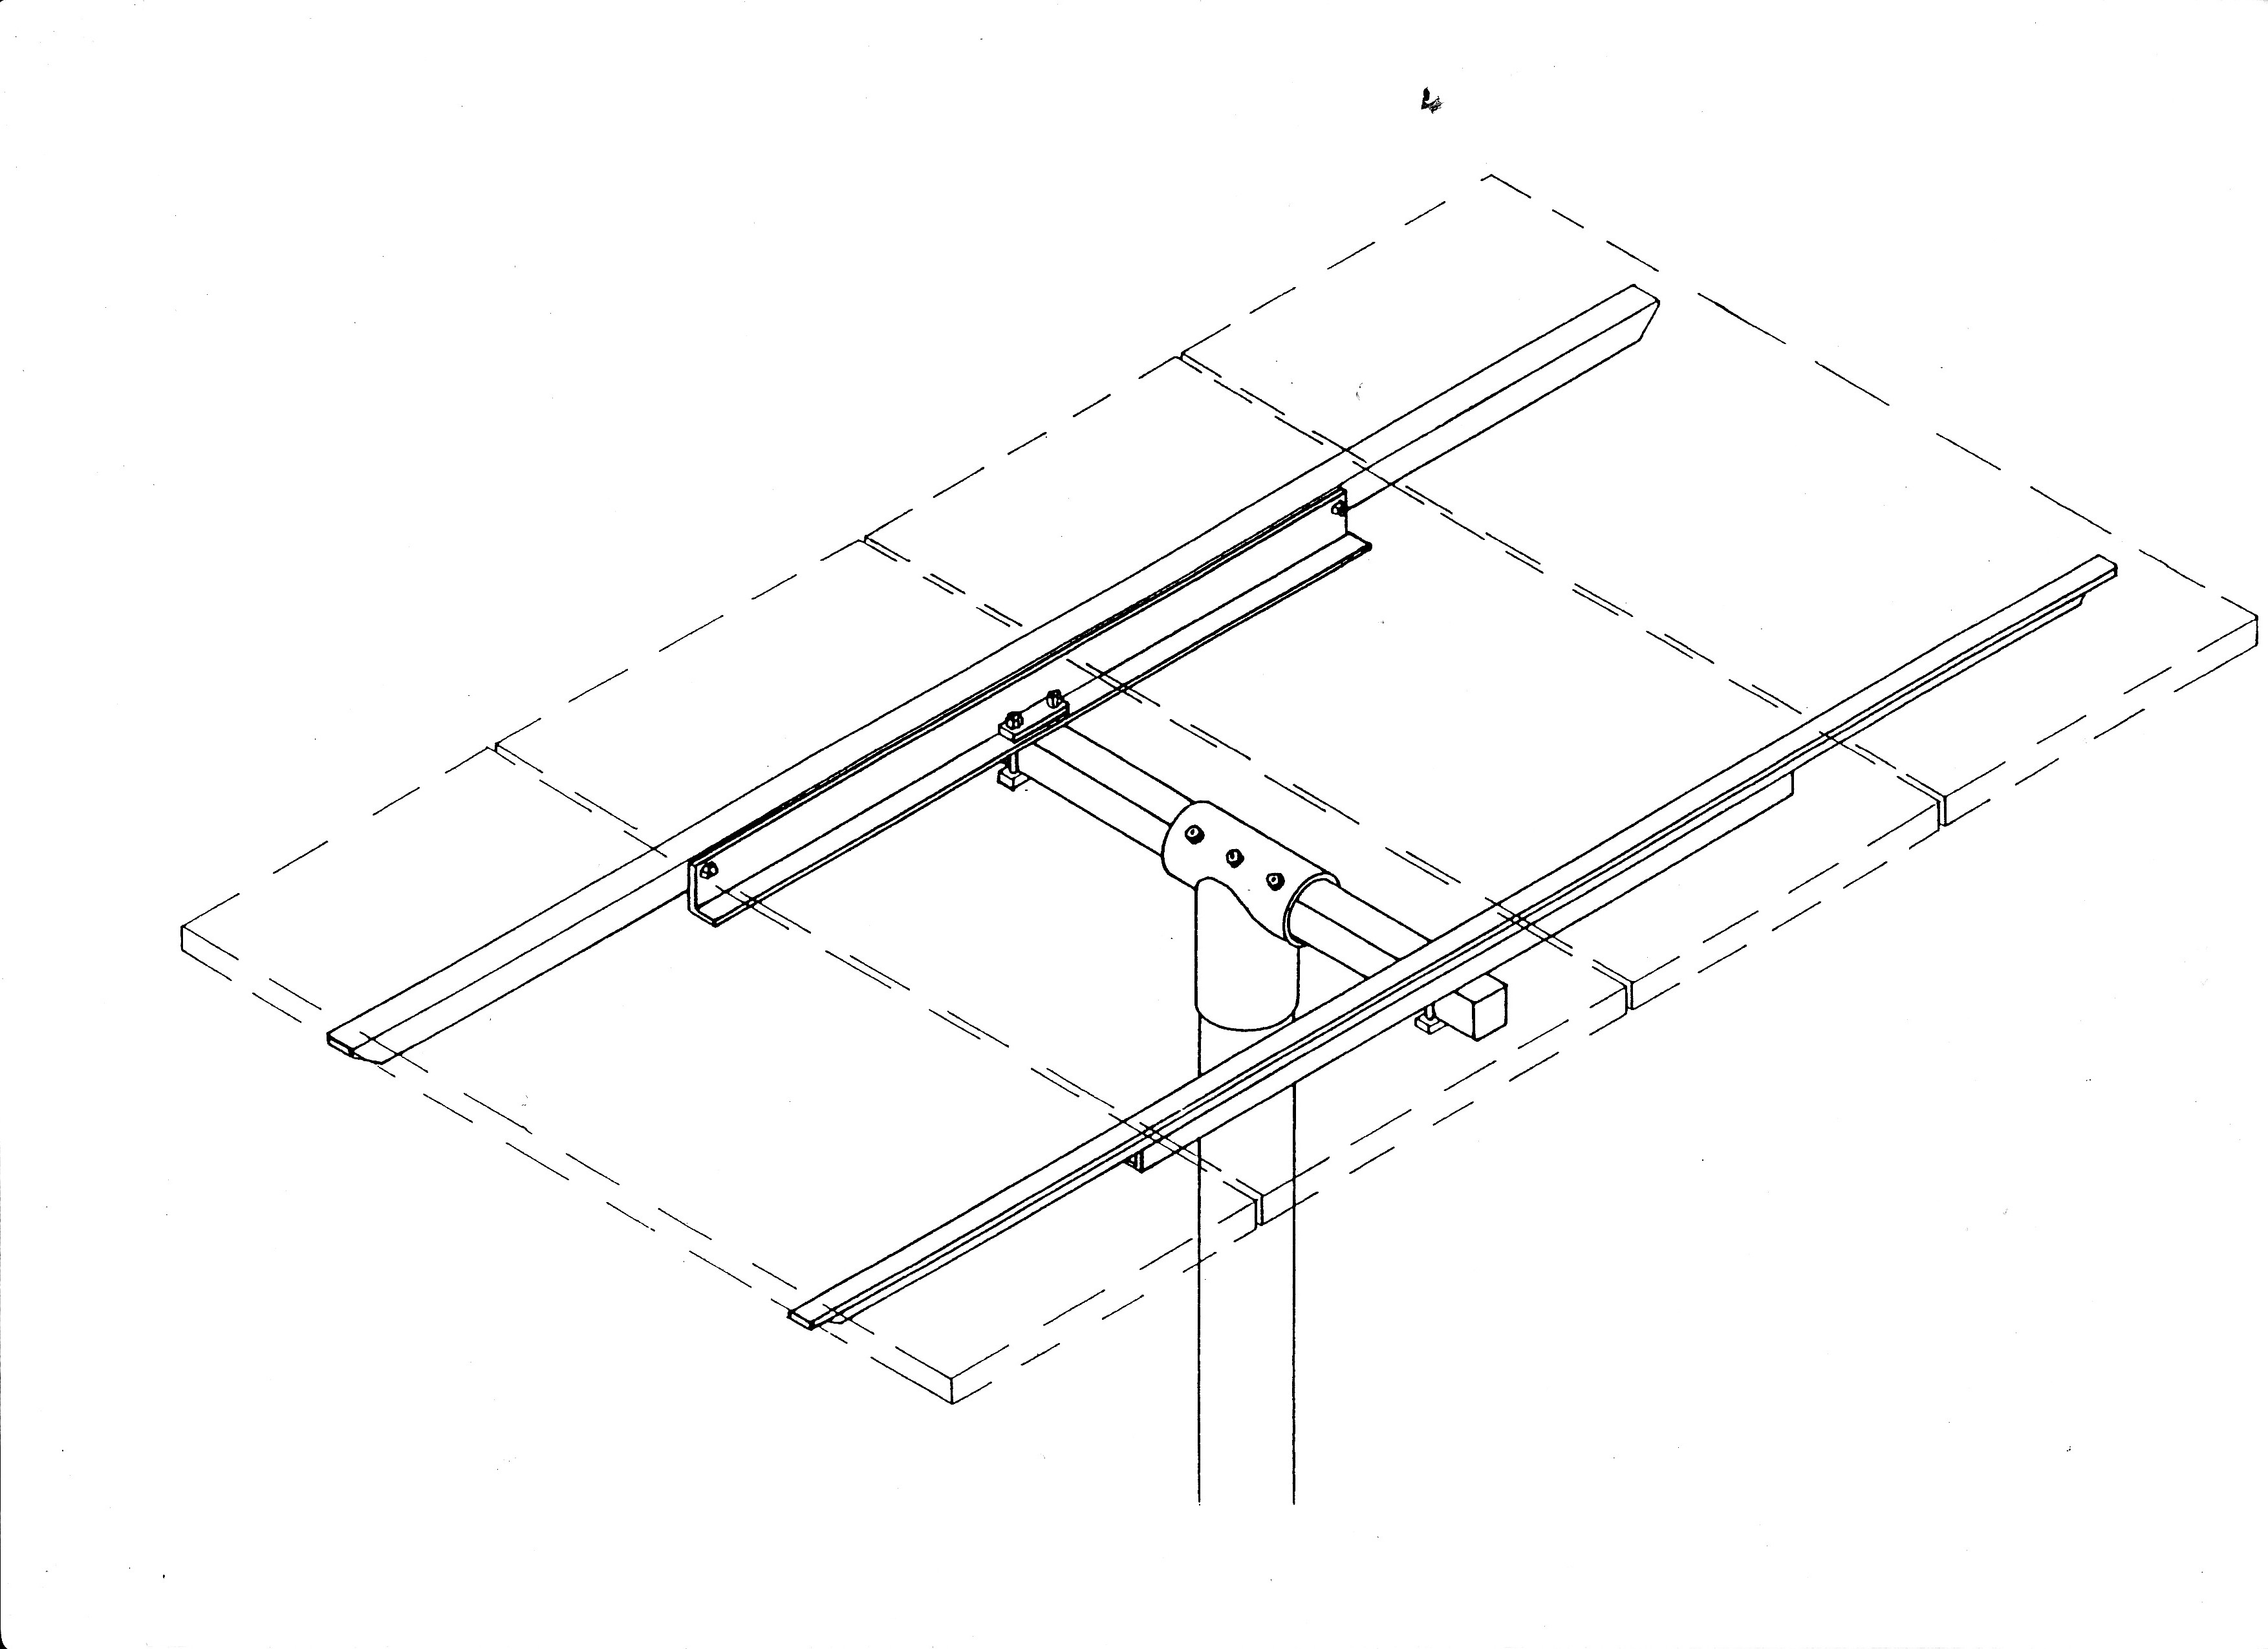 General Specialties Upm 3x Pole Mount For Panel Sizes A